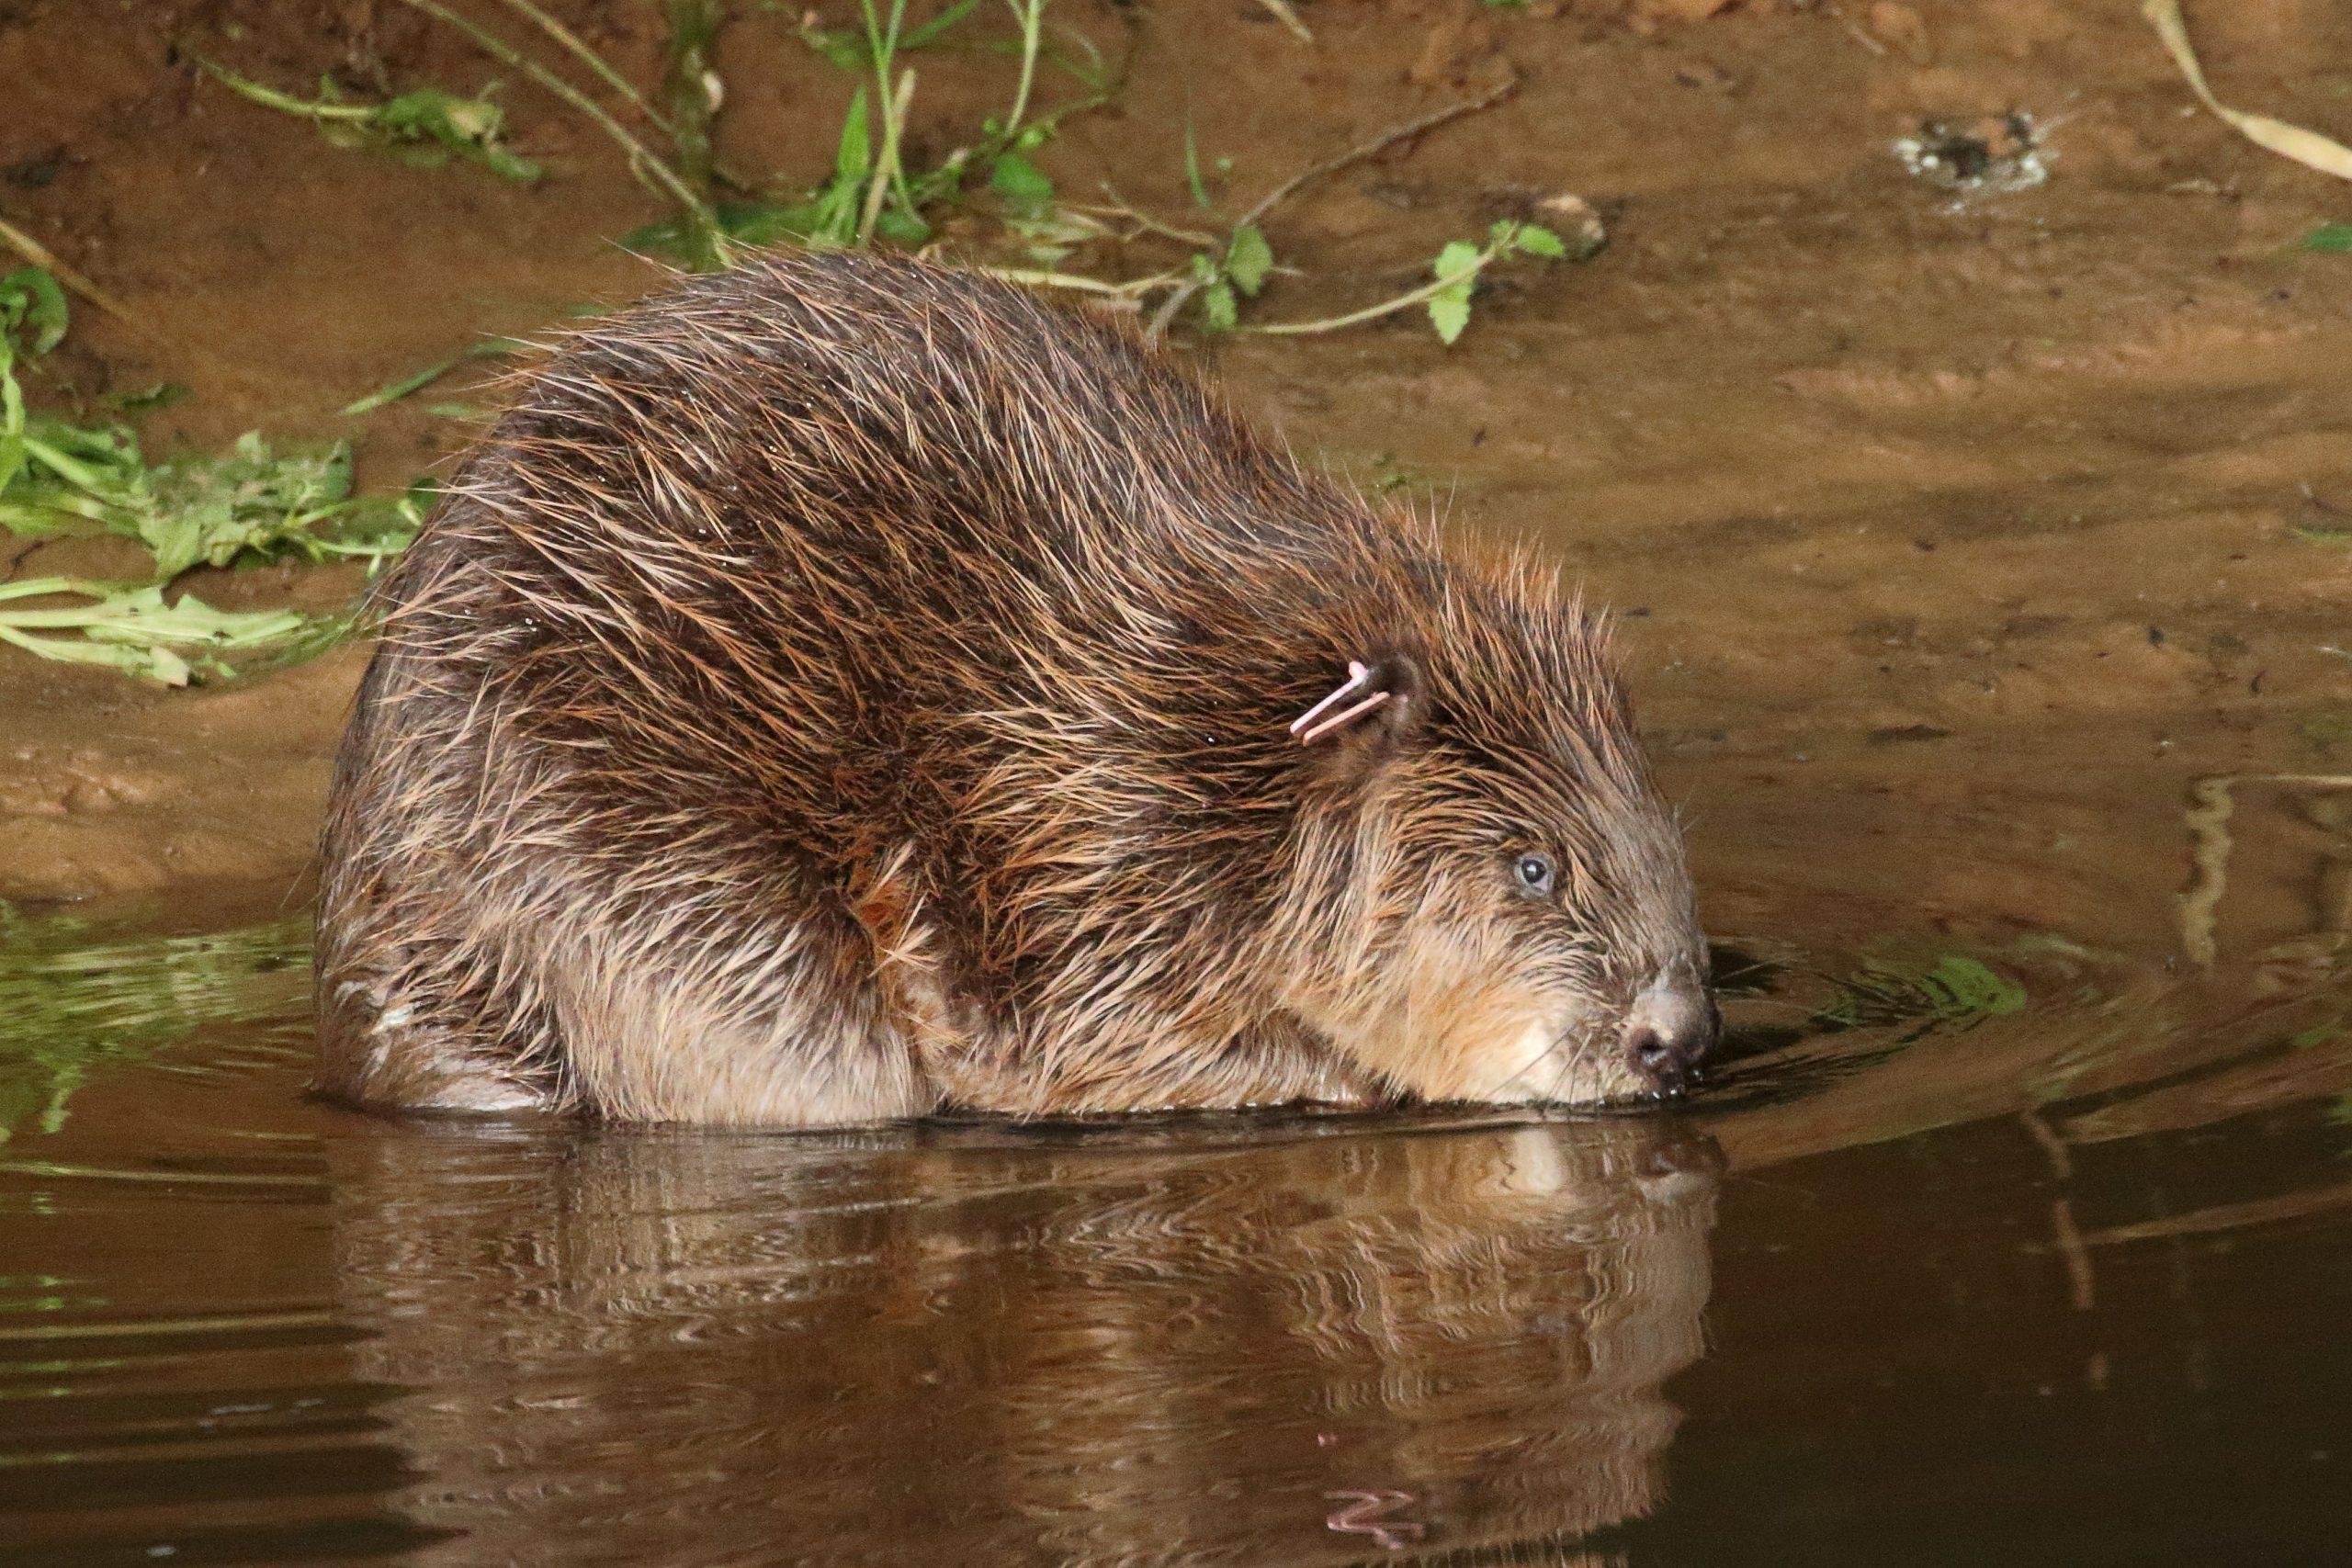 After 400 years, beavers allowed back in the wild in England for good - GLOBAL HEROES MAGAZINE